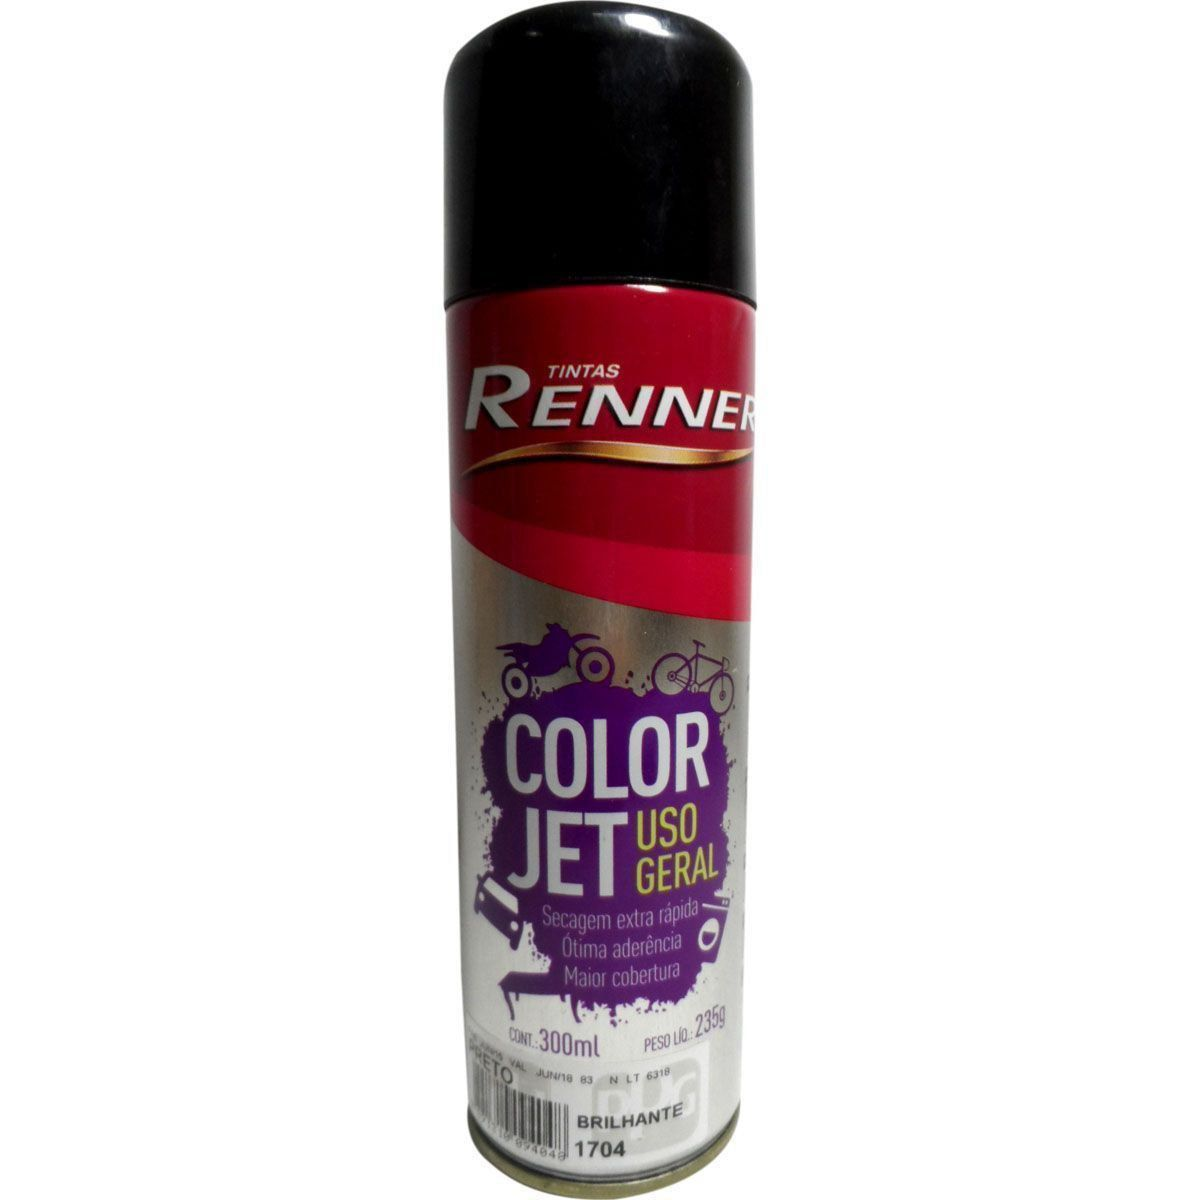 SPRAY RENNER PRETO BRILHANTE LATA 300 ML